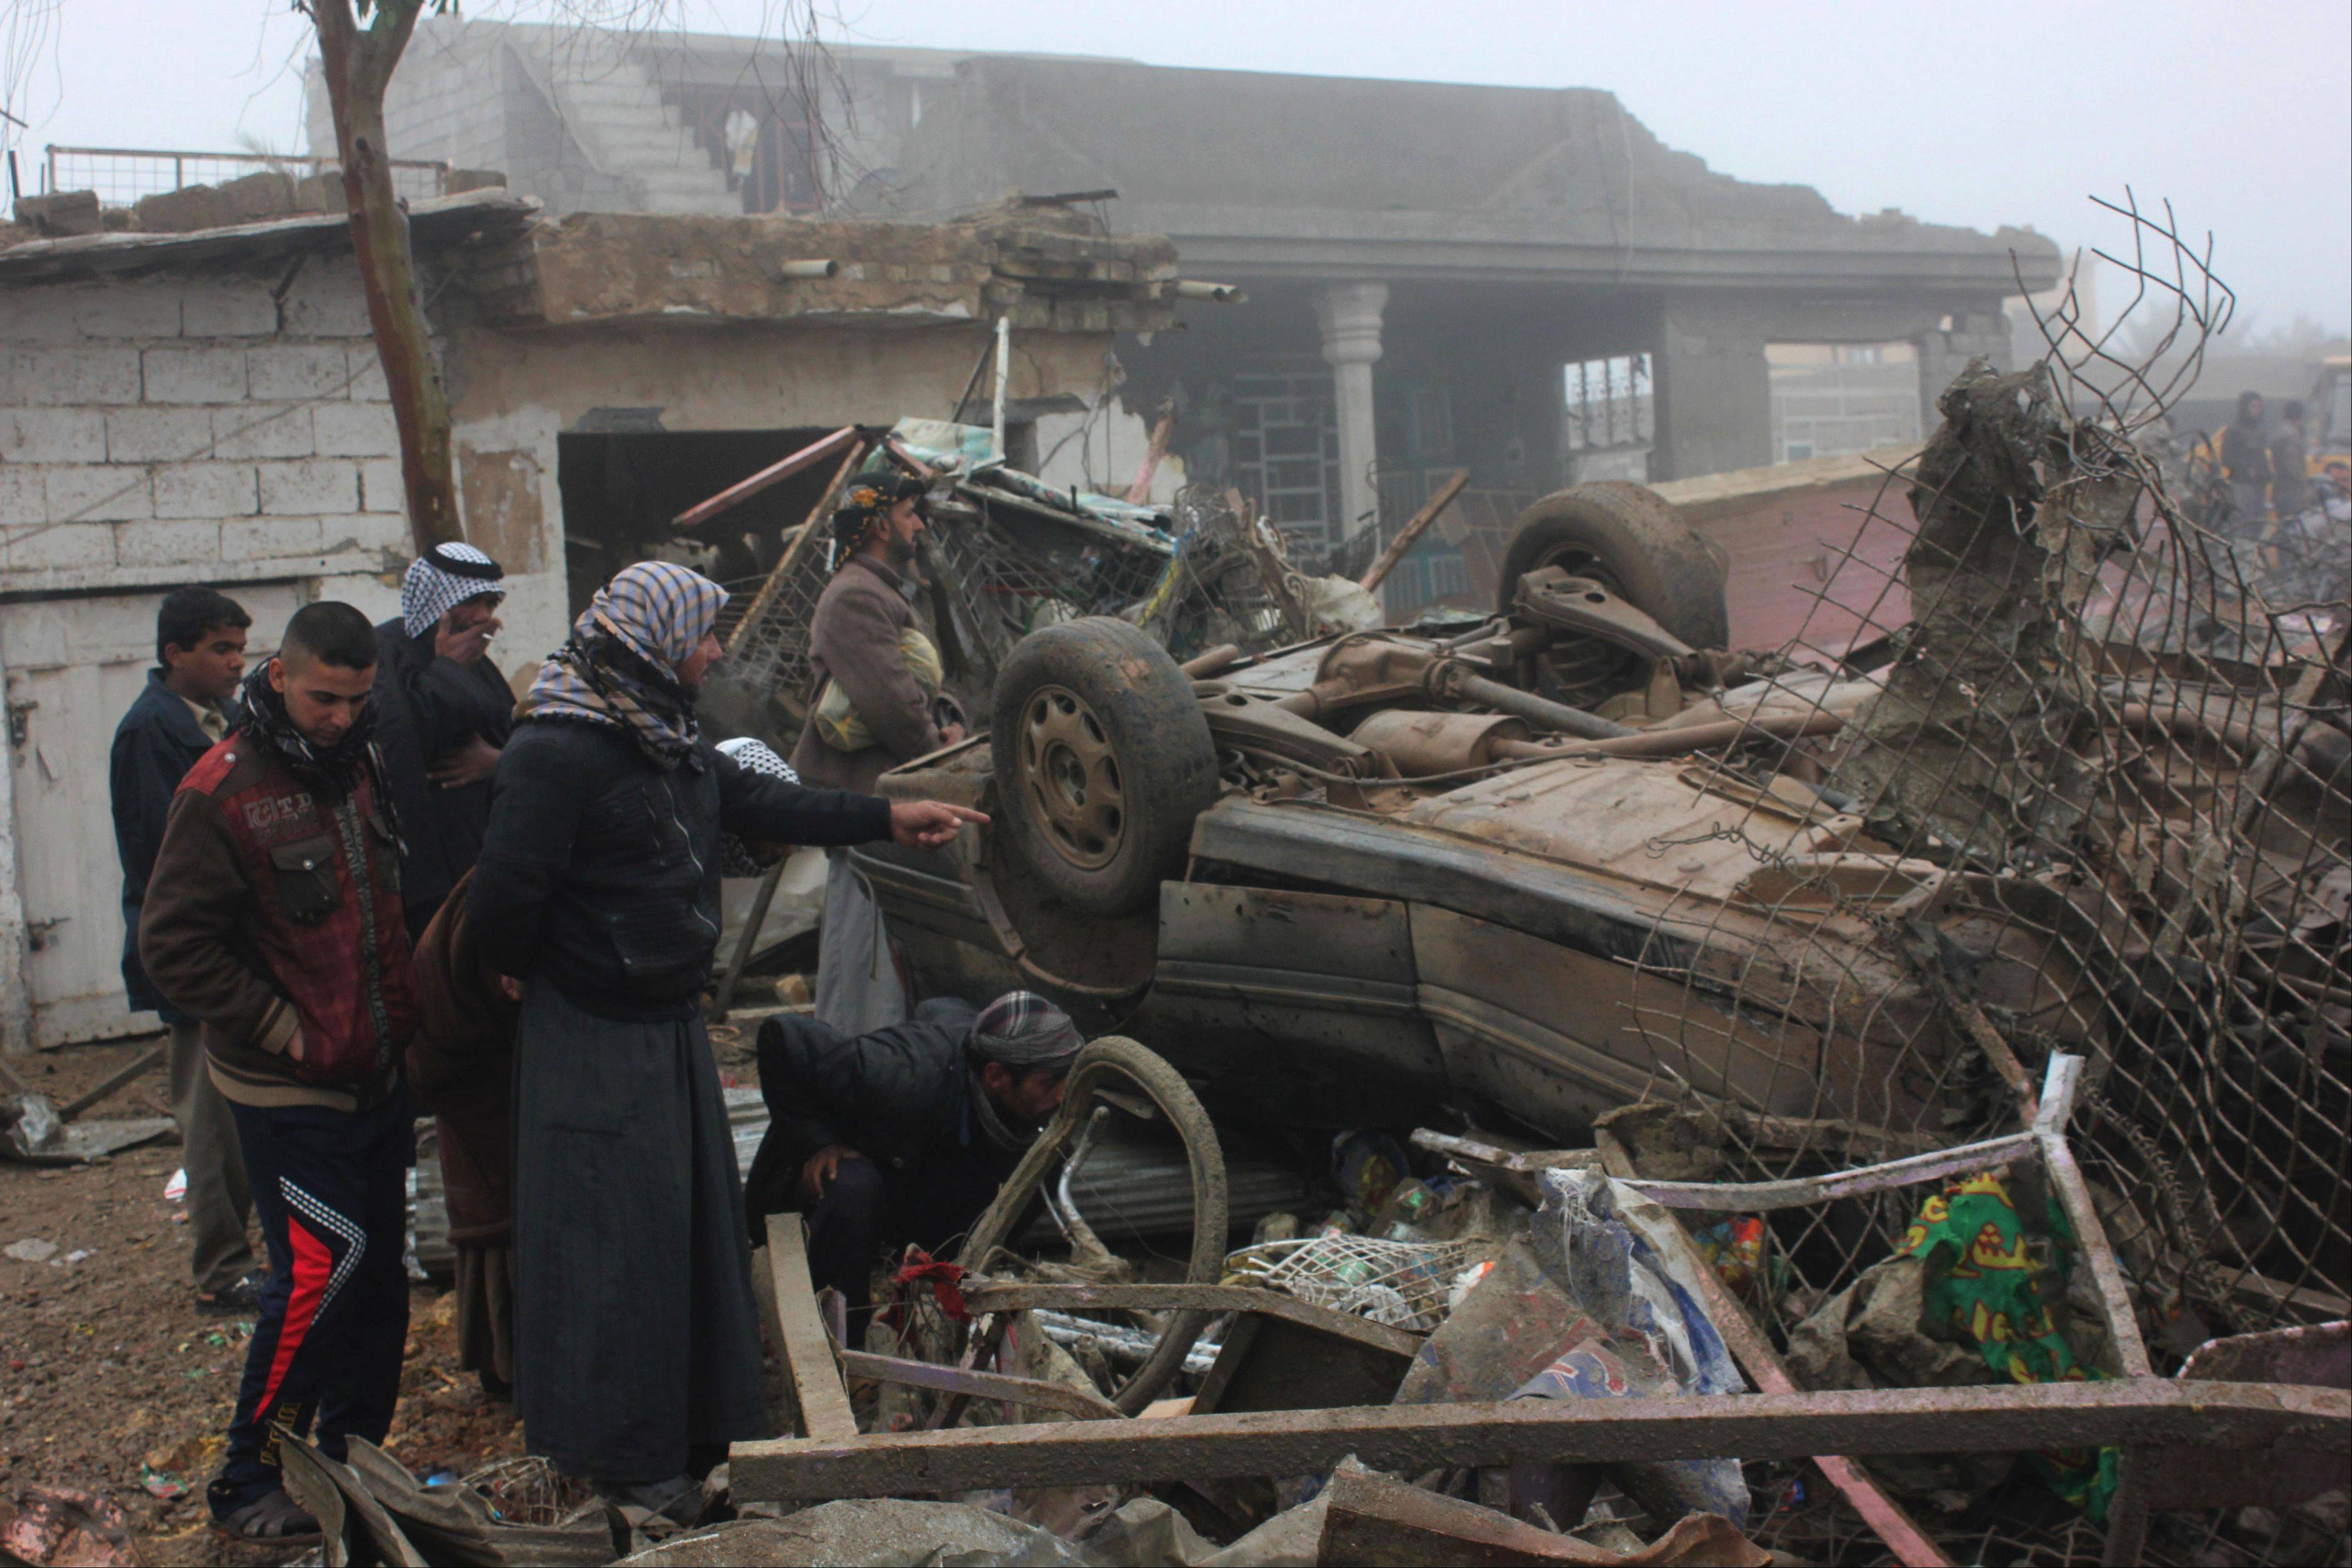 Civilians inspect the aftermath of a massive bomb attack Friday in Balad Ruz, 45 miles northeast of Baghdad. Officials say scores were killed when a pickup truck laden with explosives blew up on a busy commercial street Thursday evening.